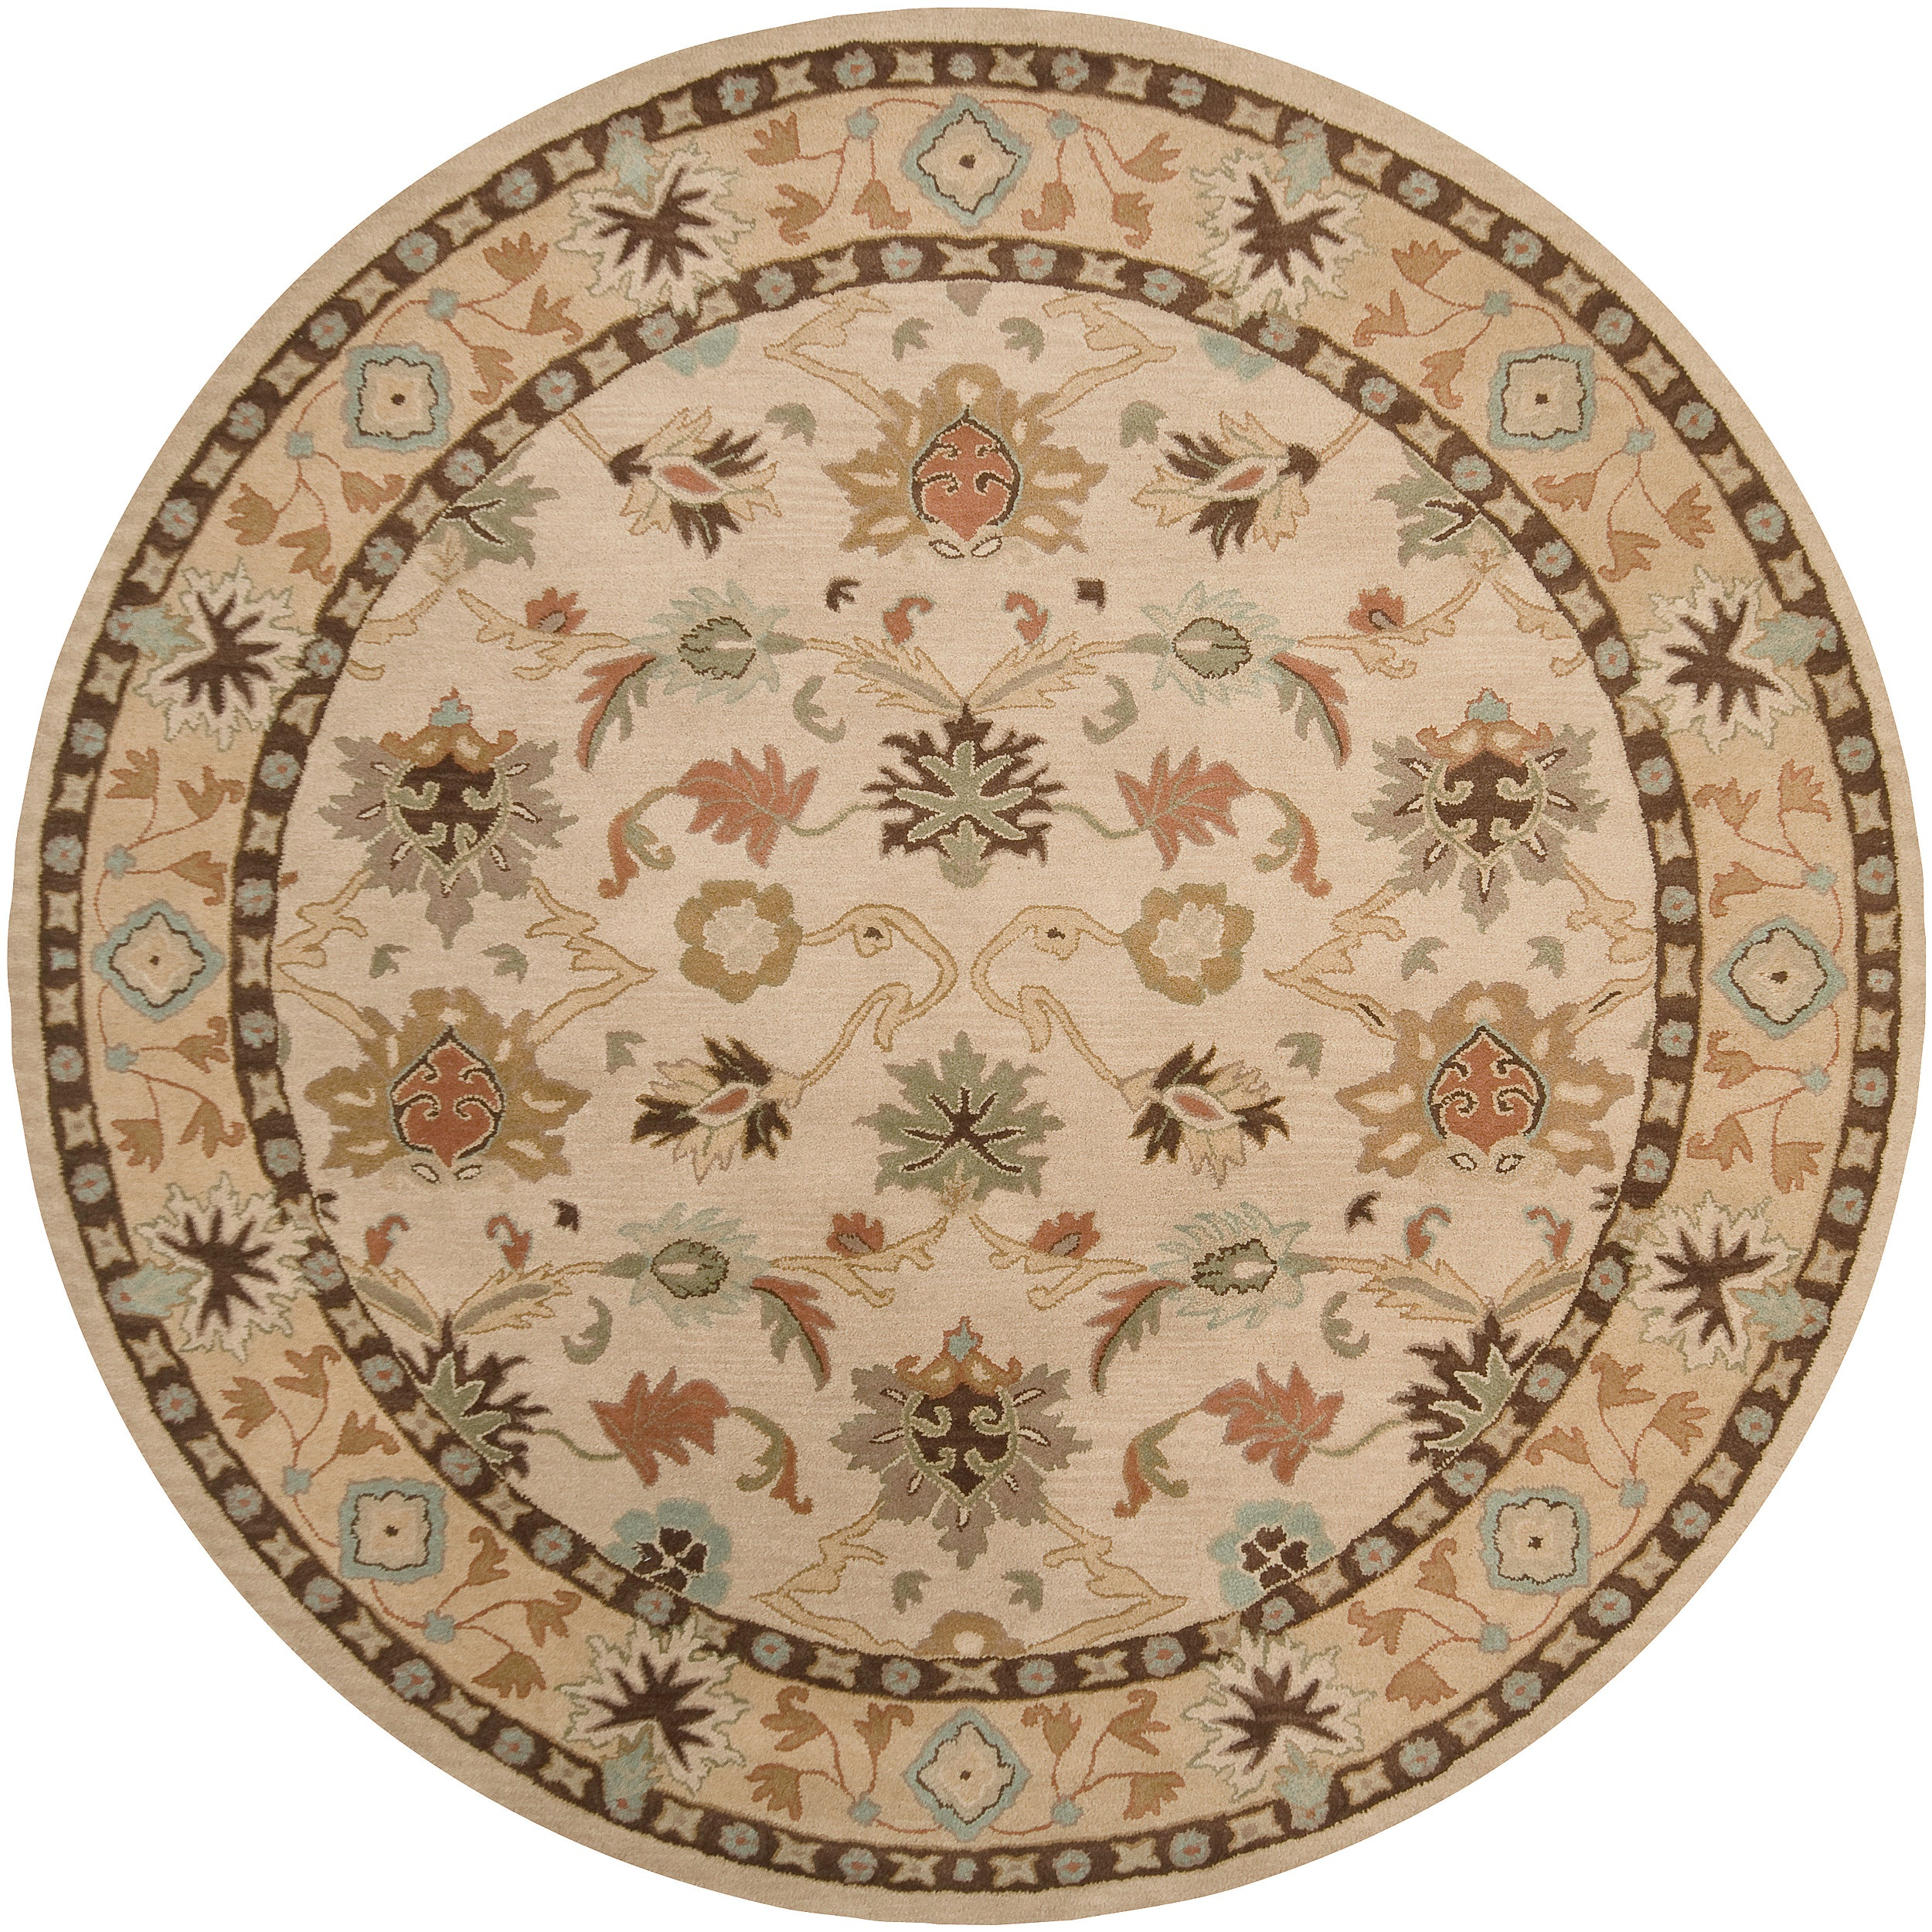 Hand tufted Traditional Camden Vanilla Floral Border Wool Rug 9 9 Round Free Shipping Today